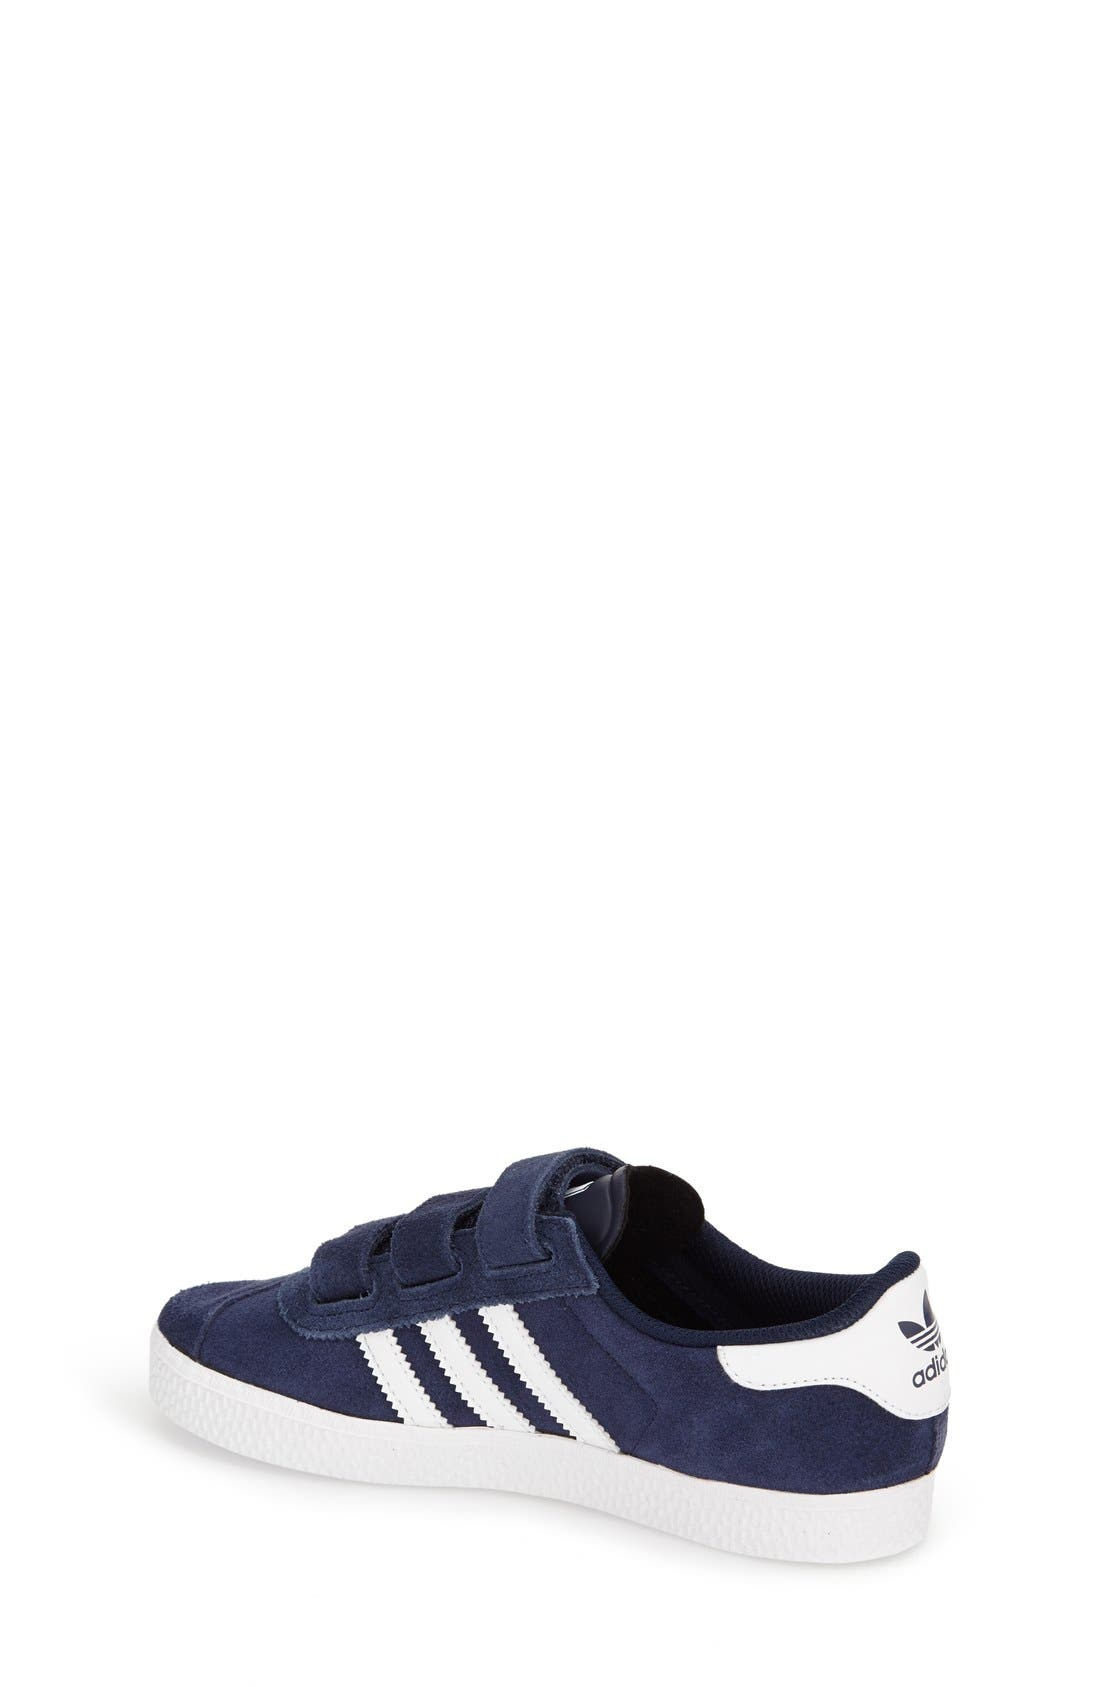 Alternate Image 2  - adidas 'Gazelle' Sneaker (Toddler & Little Kid)